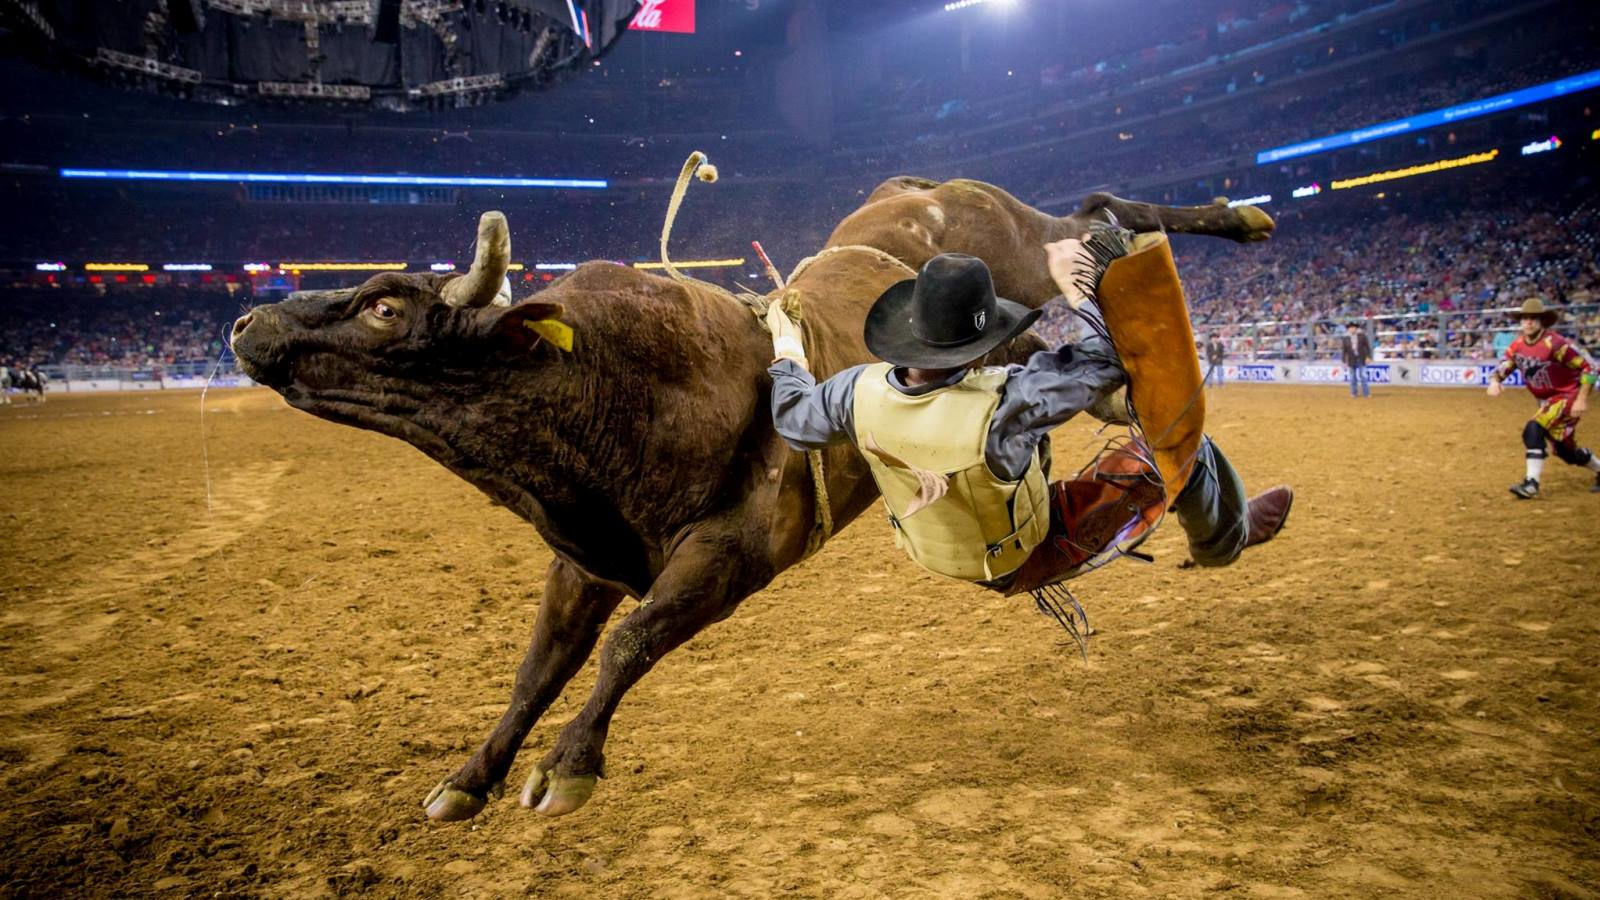 Image Courtesy of Houston Livestock Show and Rodeo